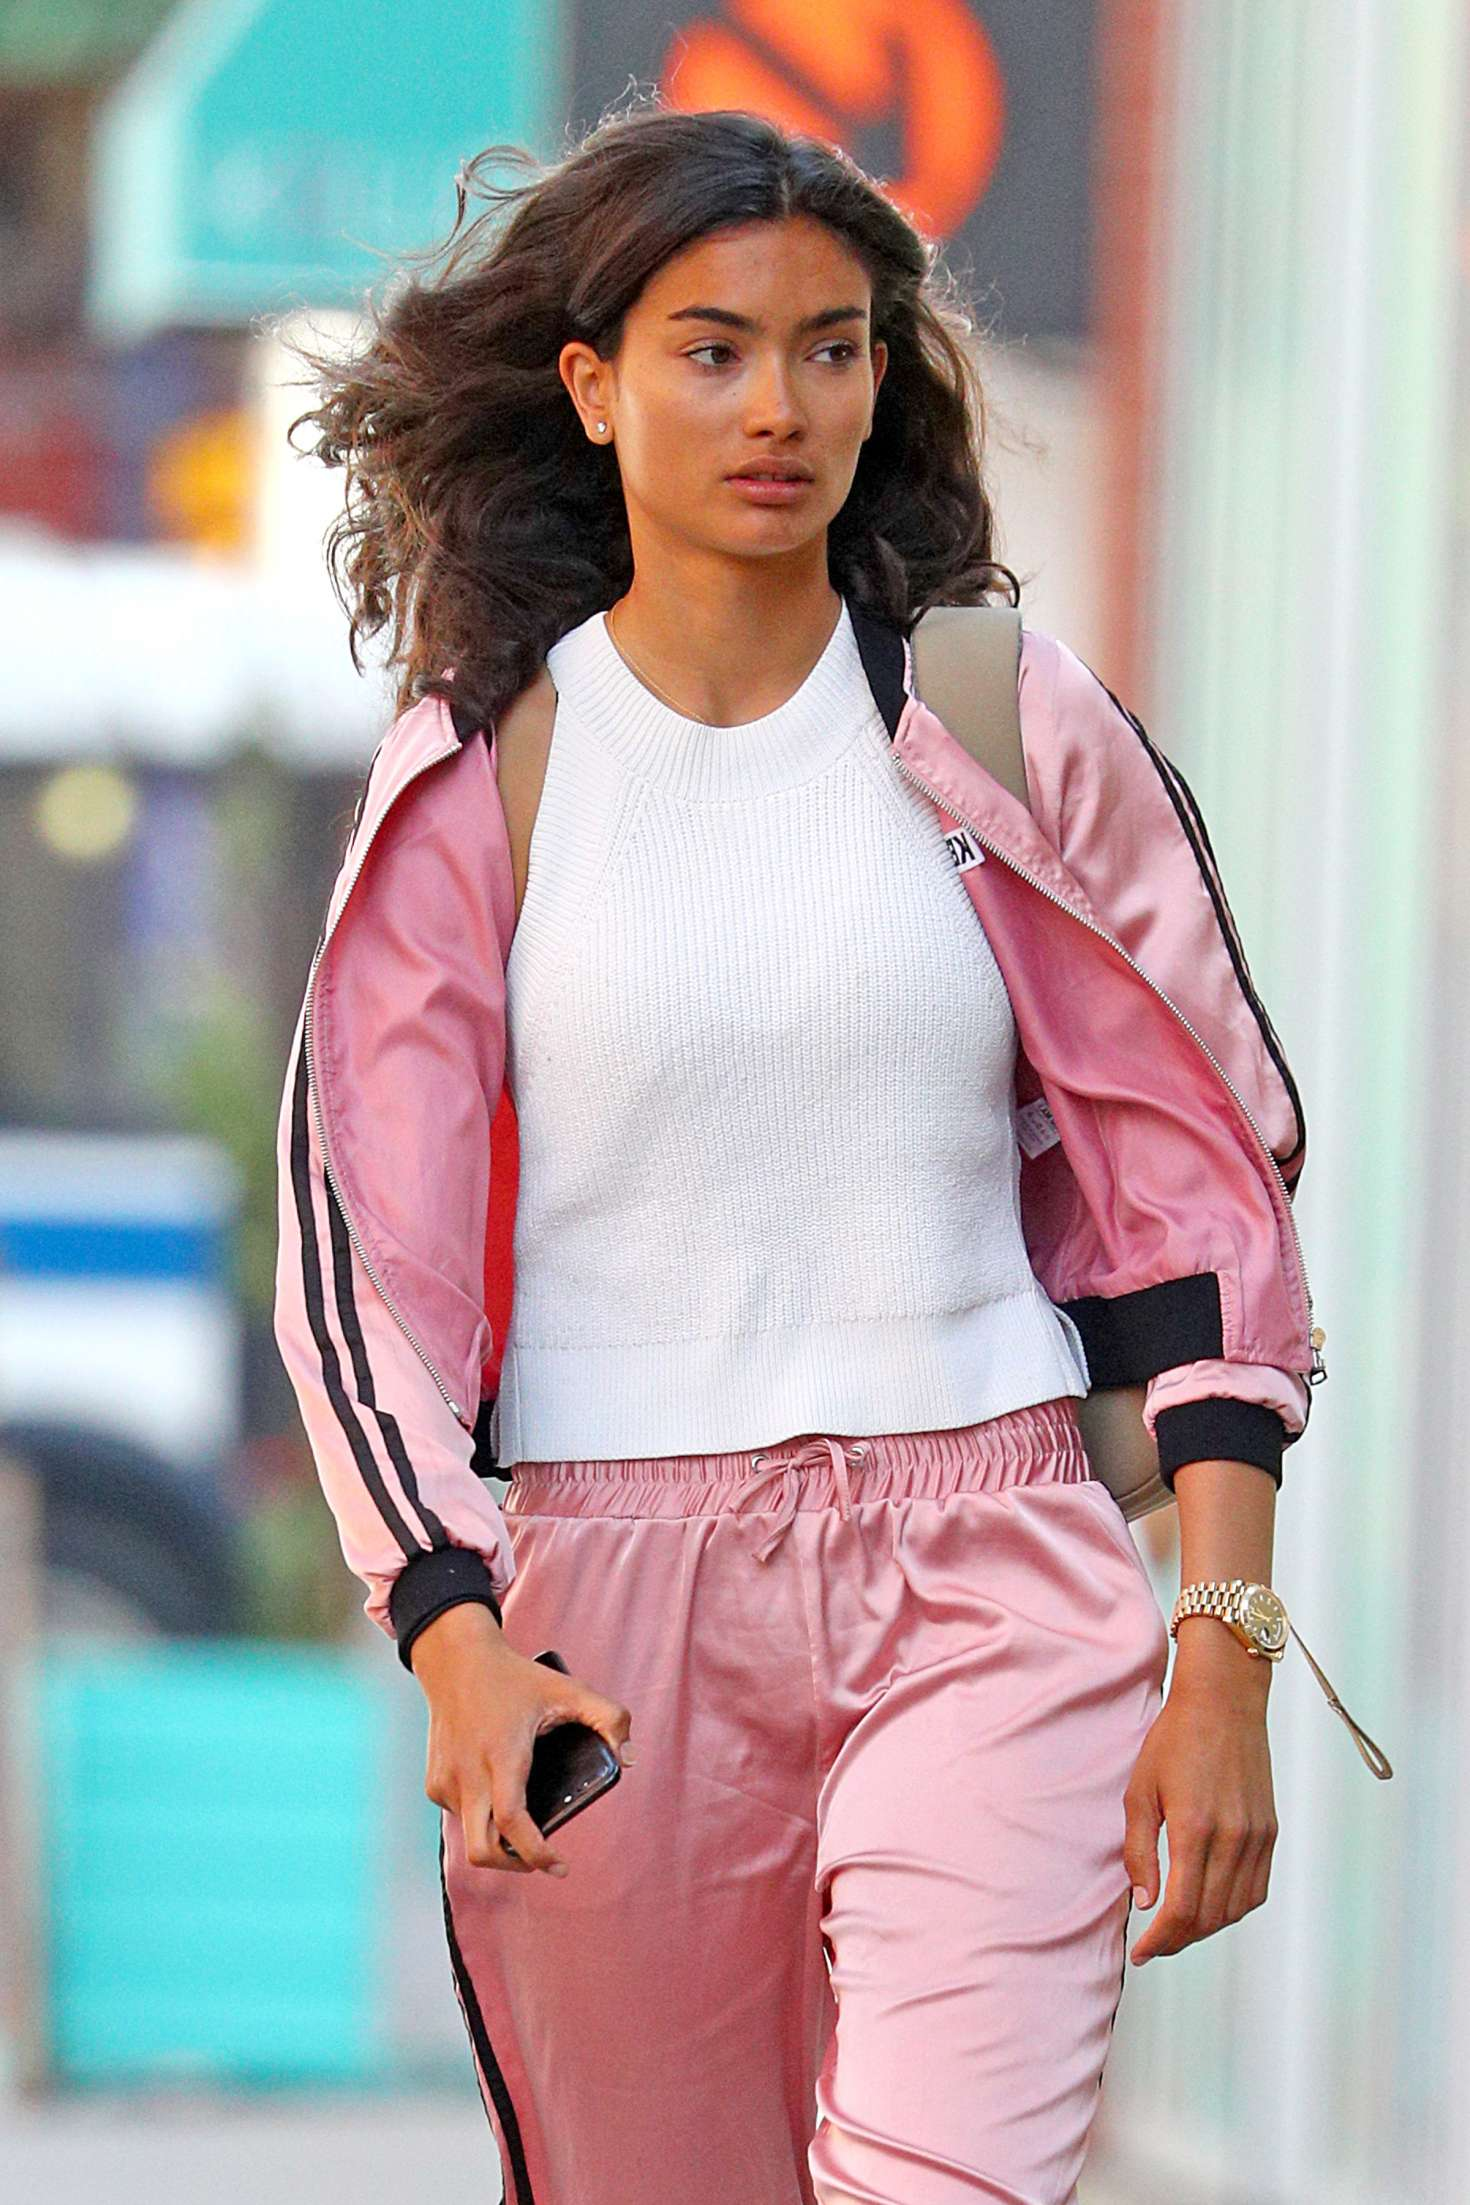 Kelly Gale 2018 : Kelly Gale in Bright Pink Tracksuit -06